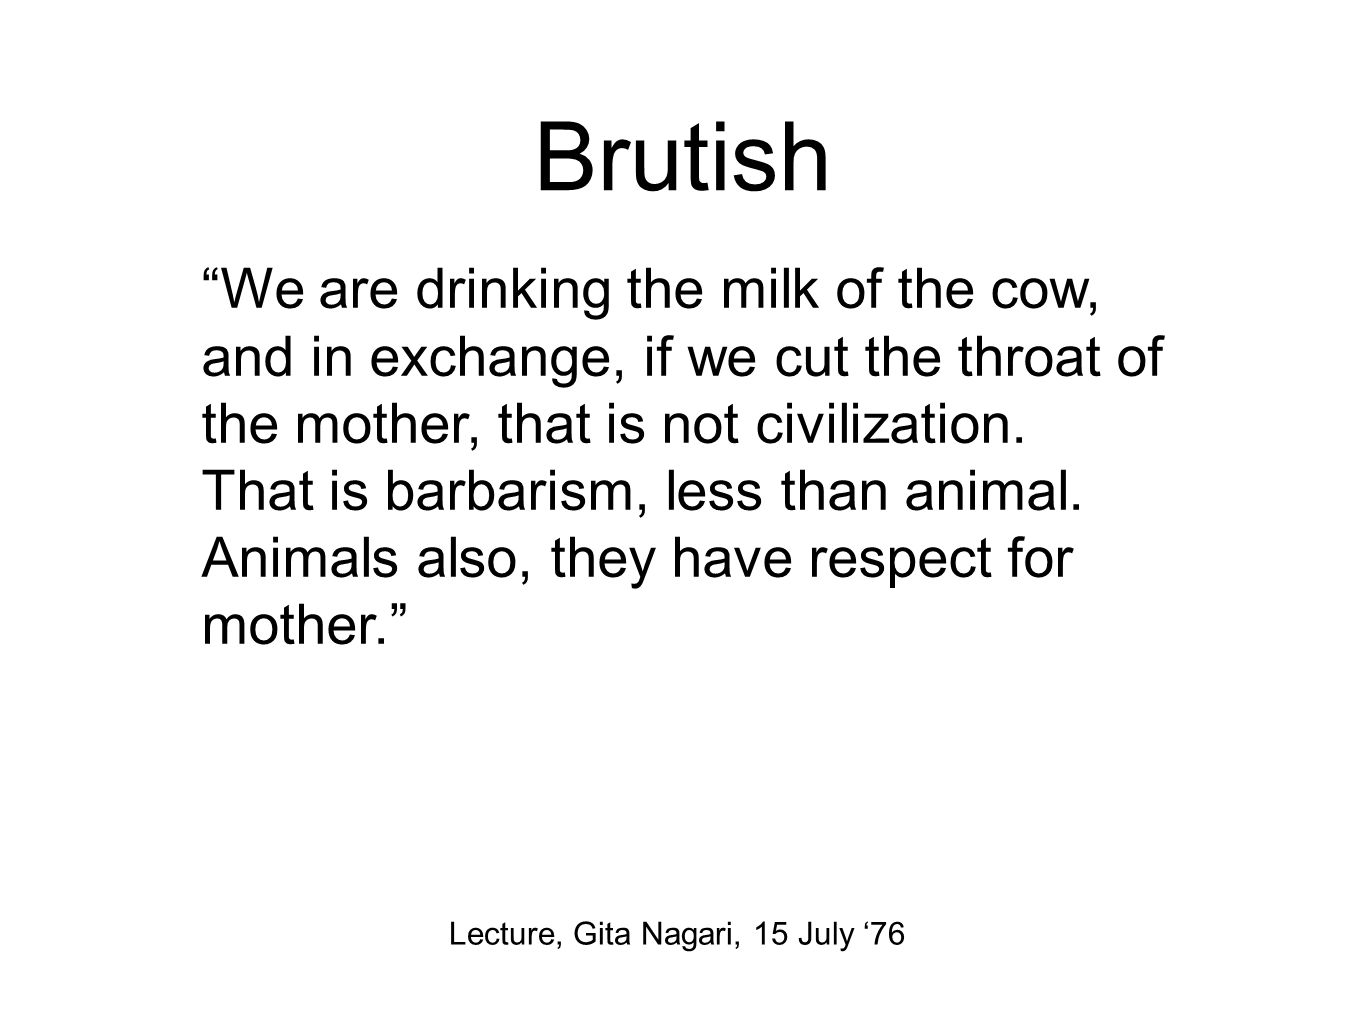 Brutish Lecture, Gita Nagari, 15 July '76 We are drinking the milk of the cow, and in exchange, if we cut the throat of the mother, that is not civilization.